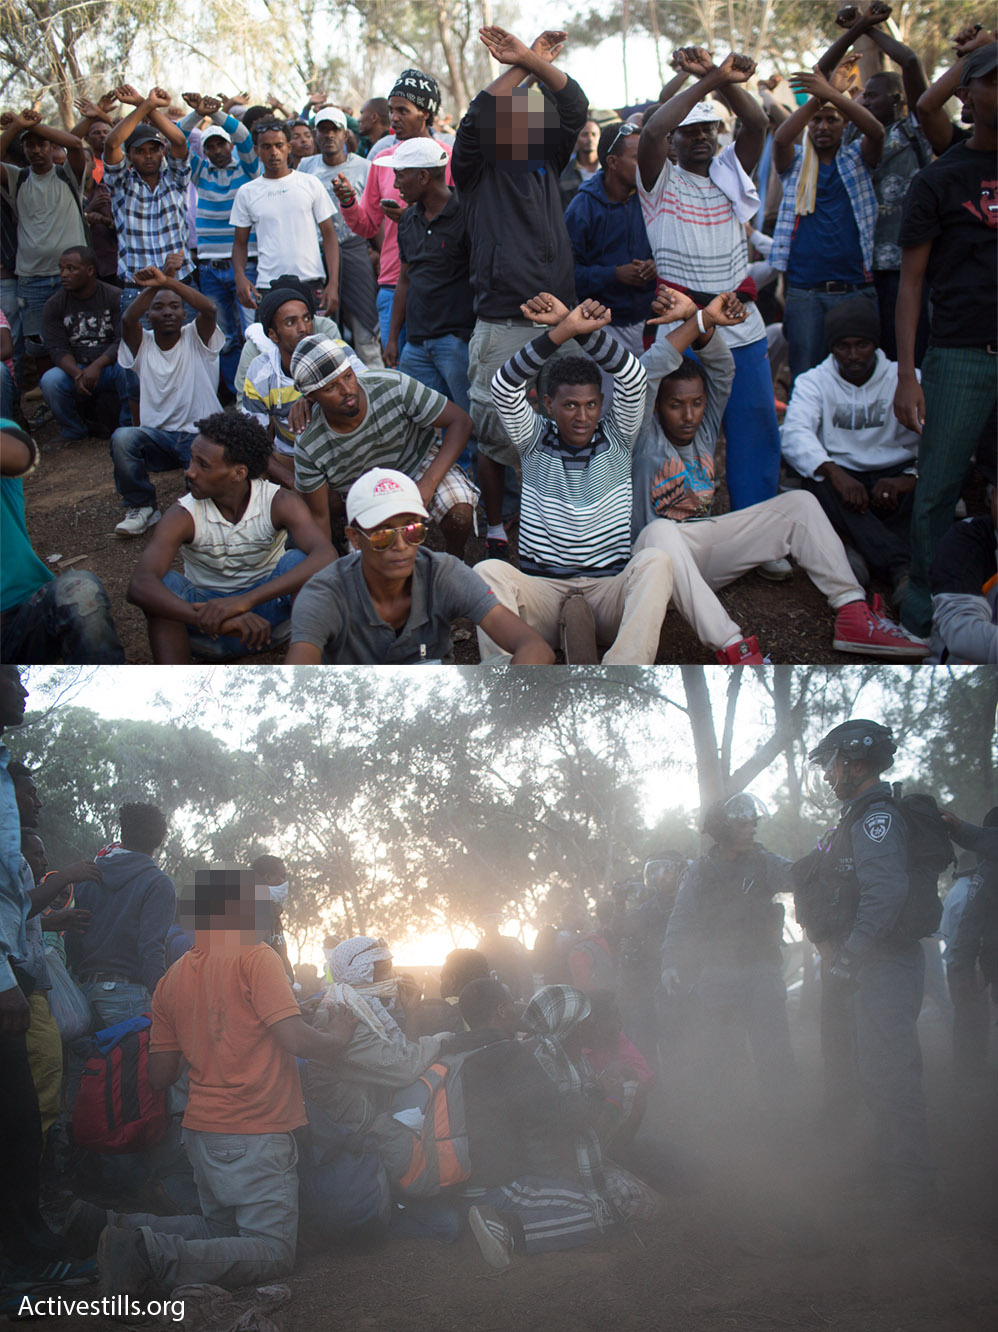 Jack and Tishome identified friends who have left Israel in photos of the protests. The pair asked that I blurred the faces of their friends, one from Sudan (top) and another from Eritrea (bottom), in order to protect their identities in their new countries.